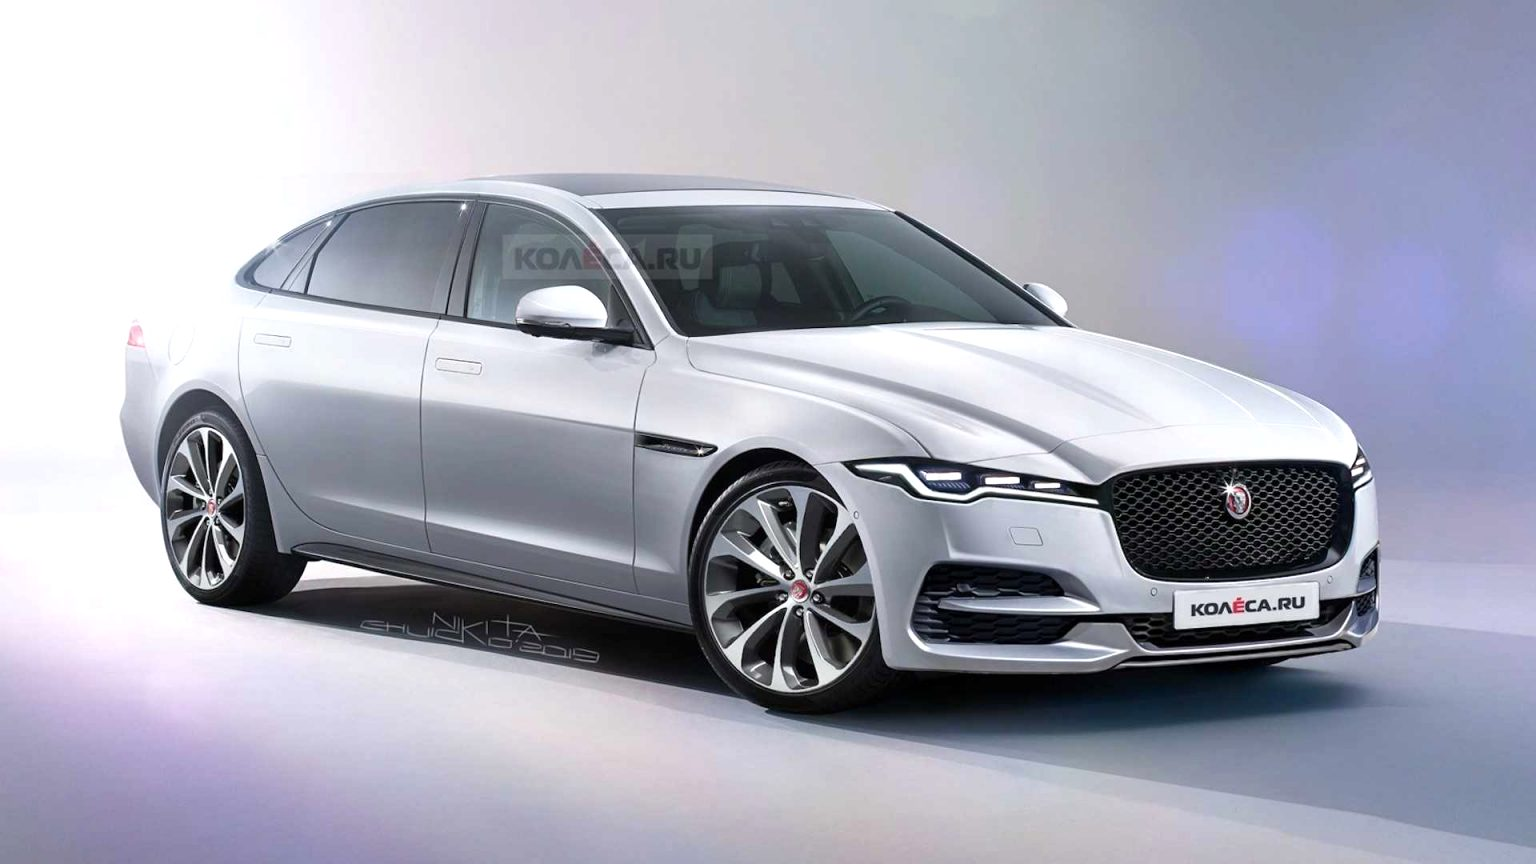 jaguar offers 2021 Exterior and Interior